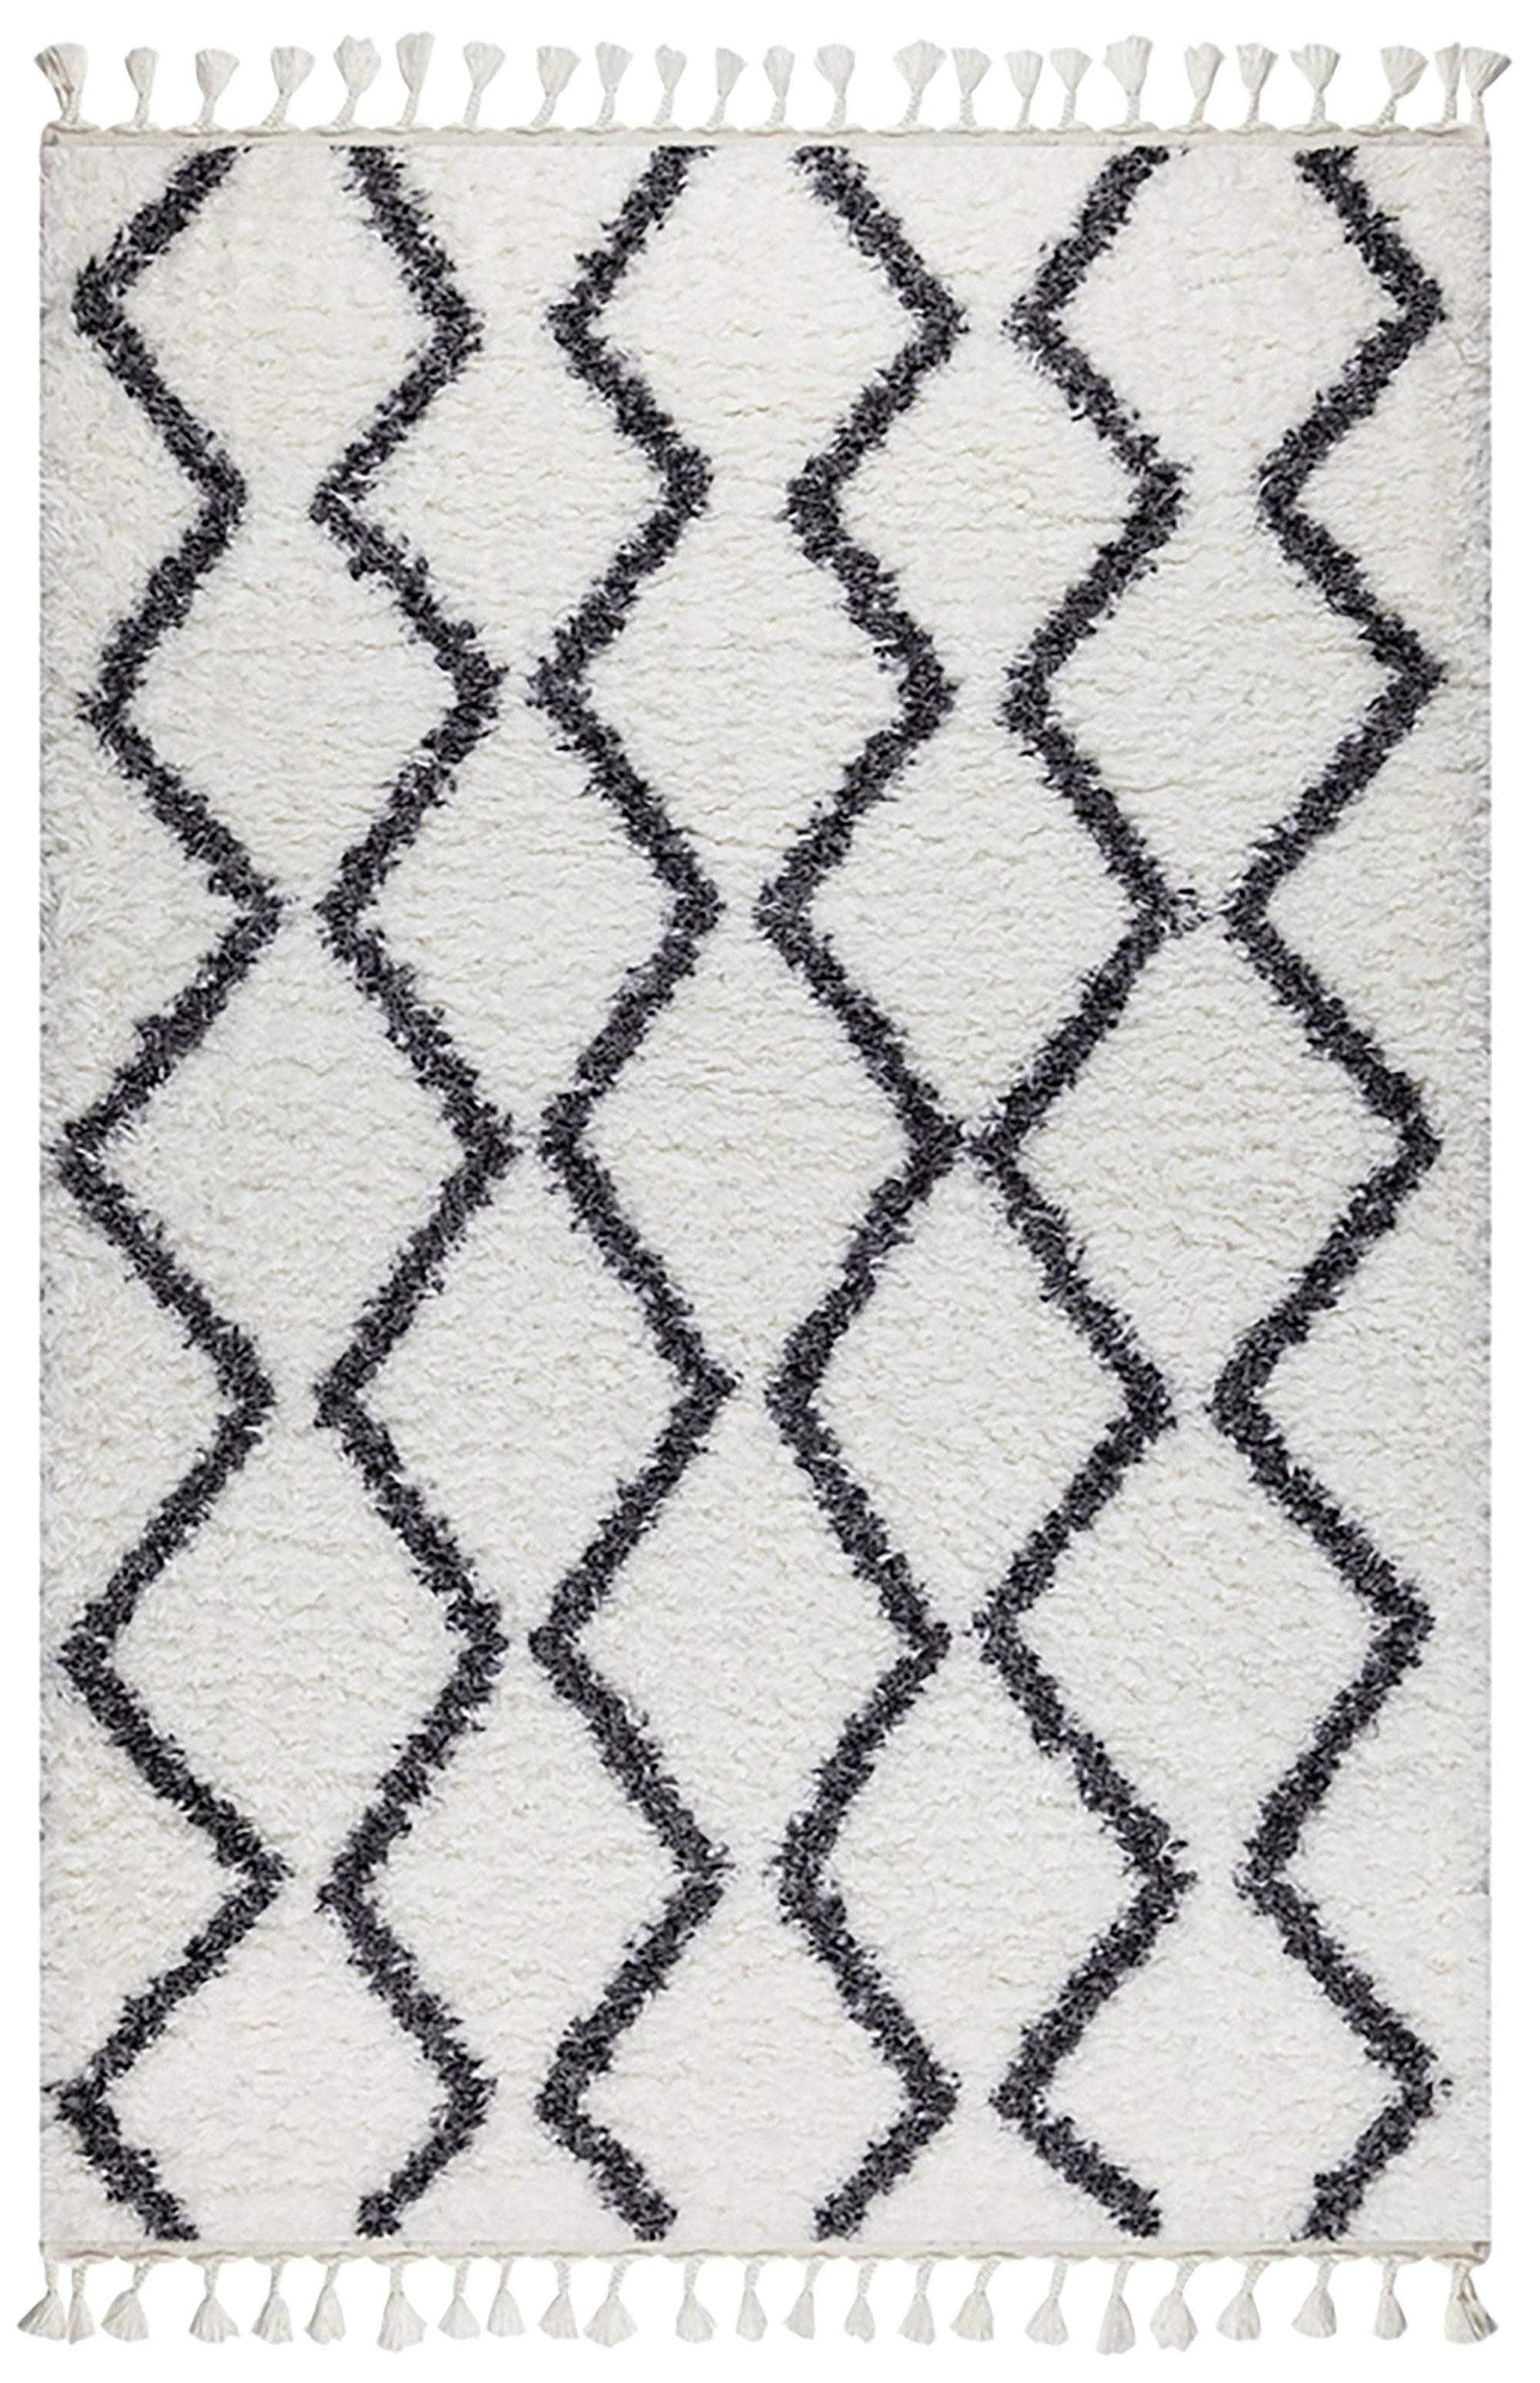 MOROCCO | Fame Rugs, Moroccan Berber Style, Neutral white Boho & Scandinavian Rug, Teppich Scandi Floor Decor Nordic natural design Area Rug